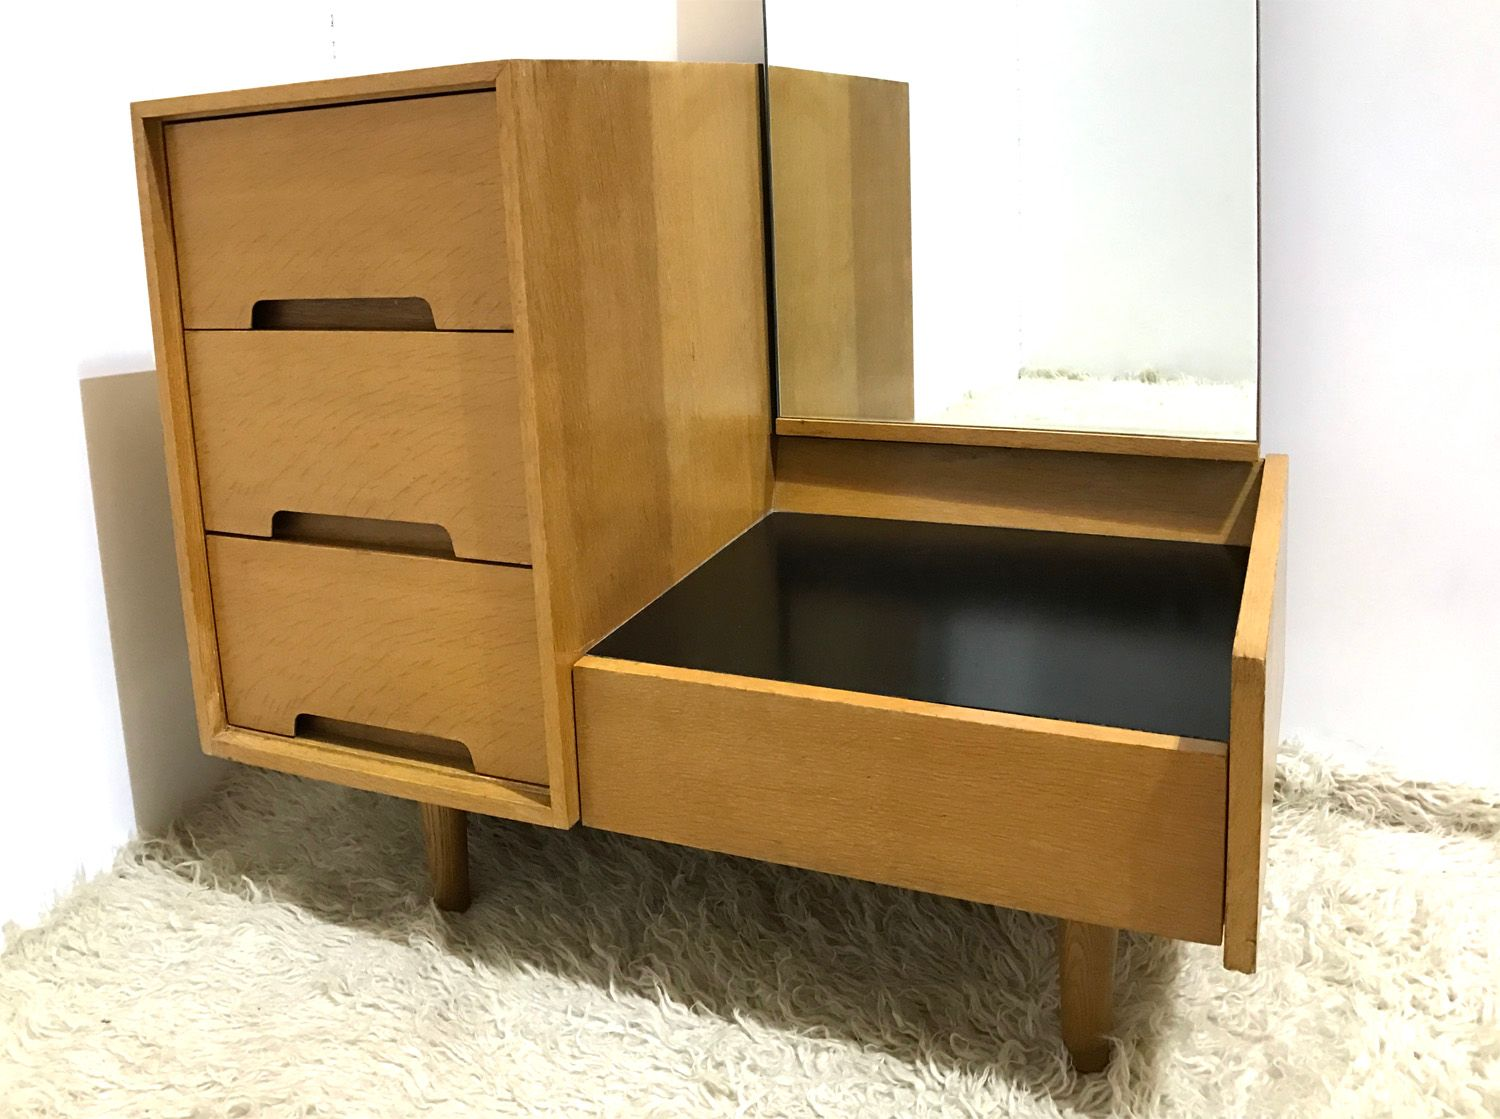 britischer mid century vintage c serie flur frisiertisch. Black Bedroom Furniture Sets. Home Design Ideas